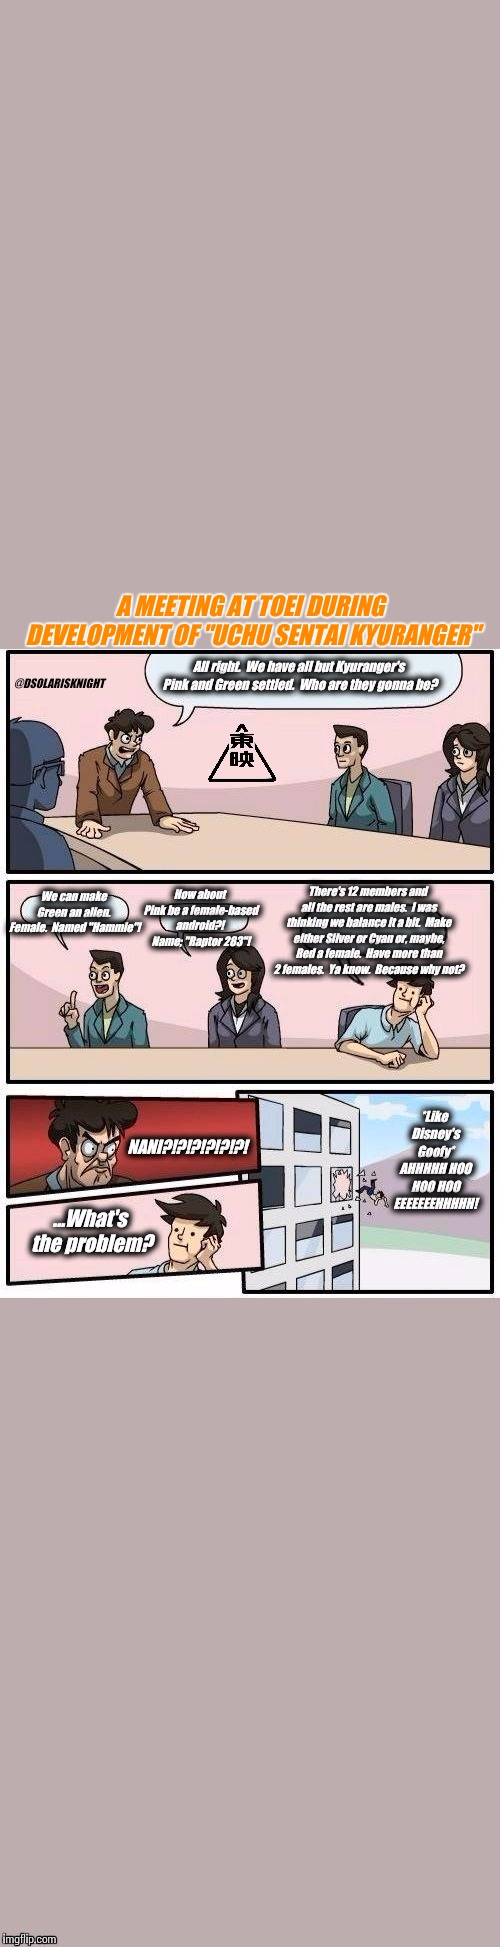 "UCHU SENTAI KYURANGER BOARDROOM MEETING | A MEETING AT TOEI DURING DEVELOPMENT OF ""UCHU SENTAI KYURANGER"" 